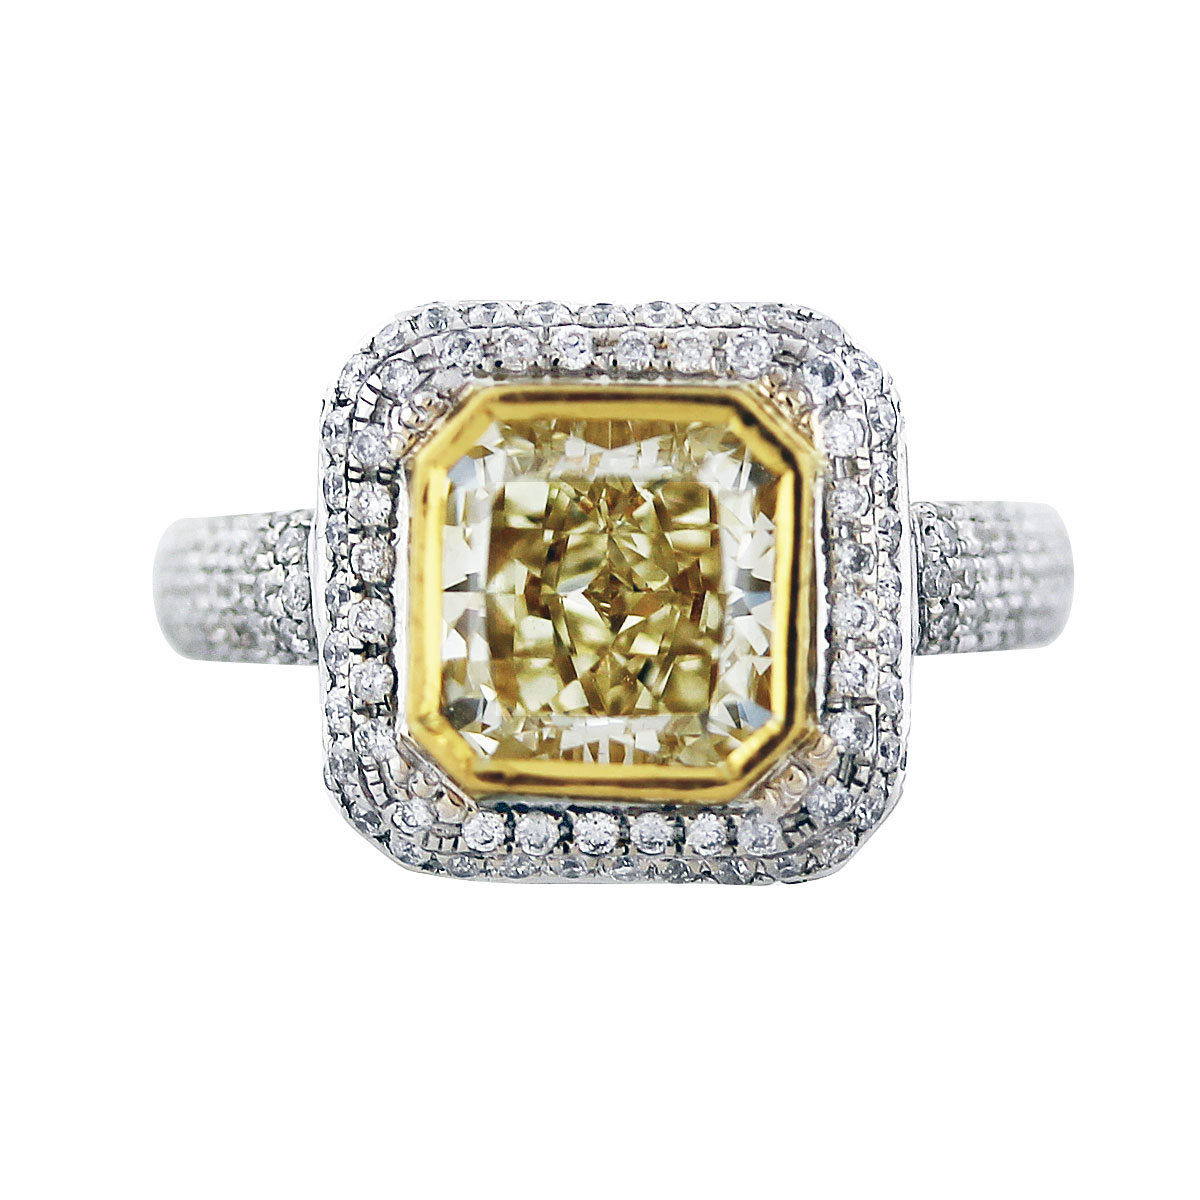 fancy yellow cushion cut diamond engagement ring in 18k two tone gold. Black Bedroom Furniture Sets. Home Design Ideas